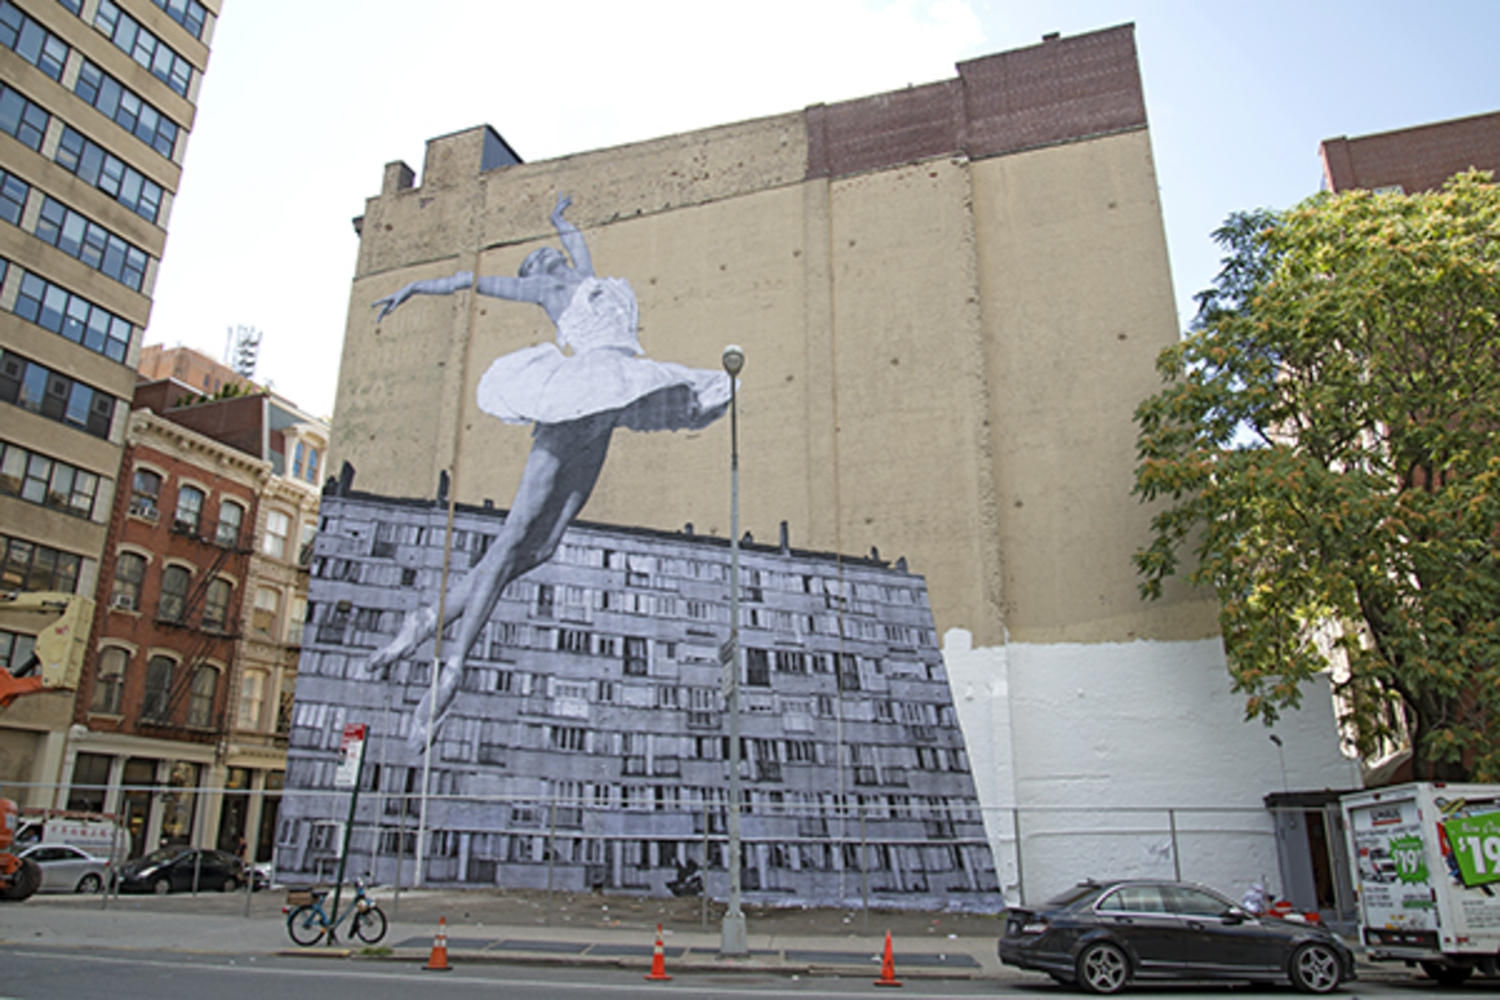 Street Artist JR Installs 75-Foot Ballerina Photo in Tribeca